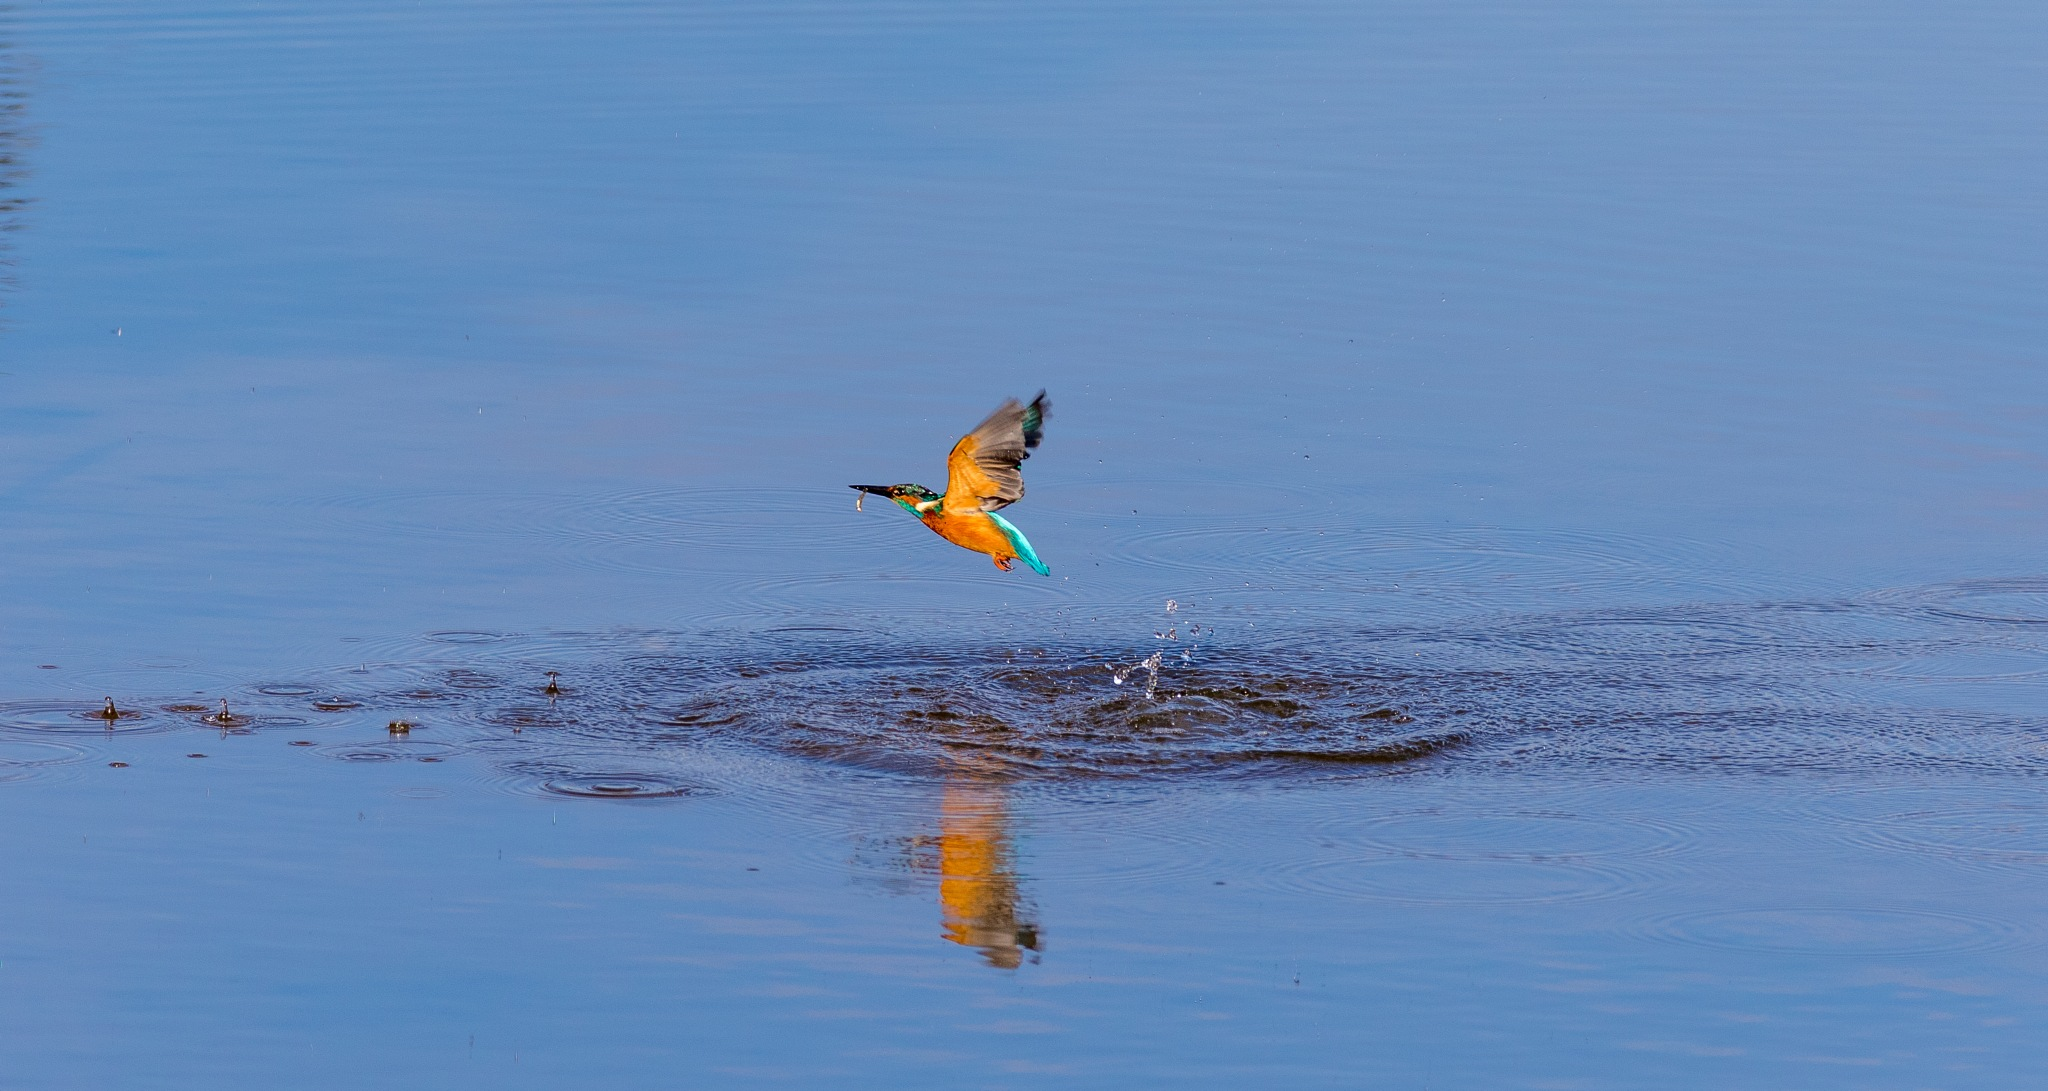 Kingfisher in flight by Tony Simcock Eadie